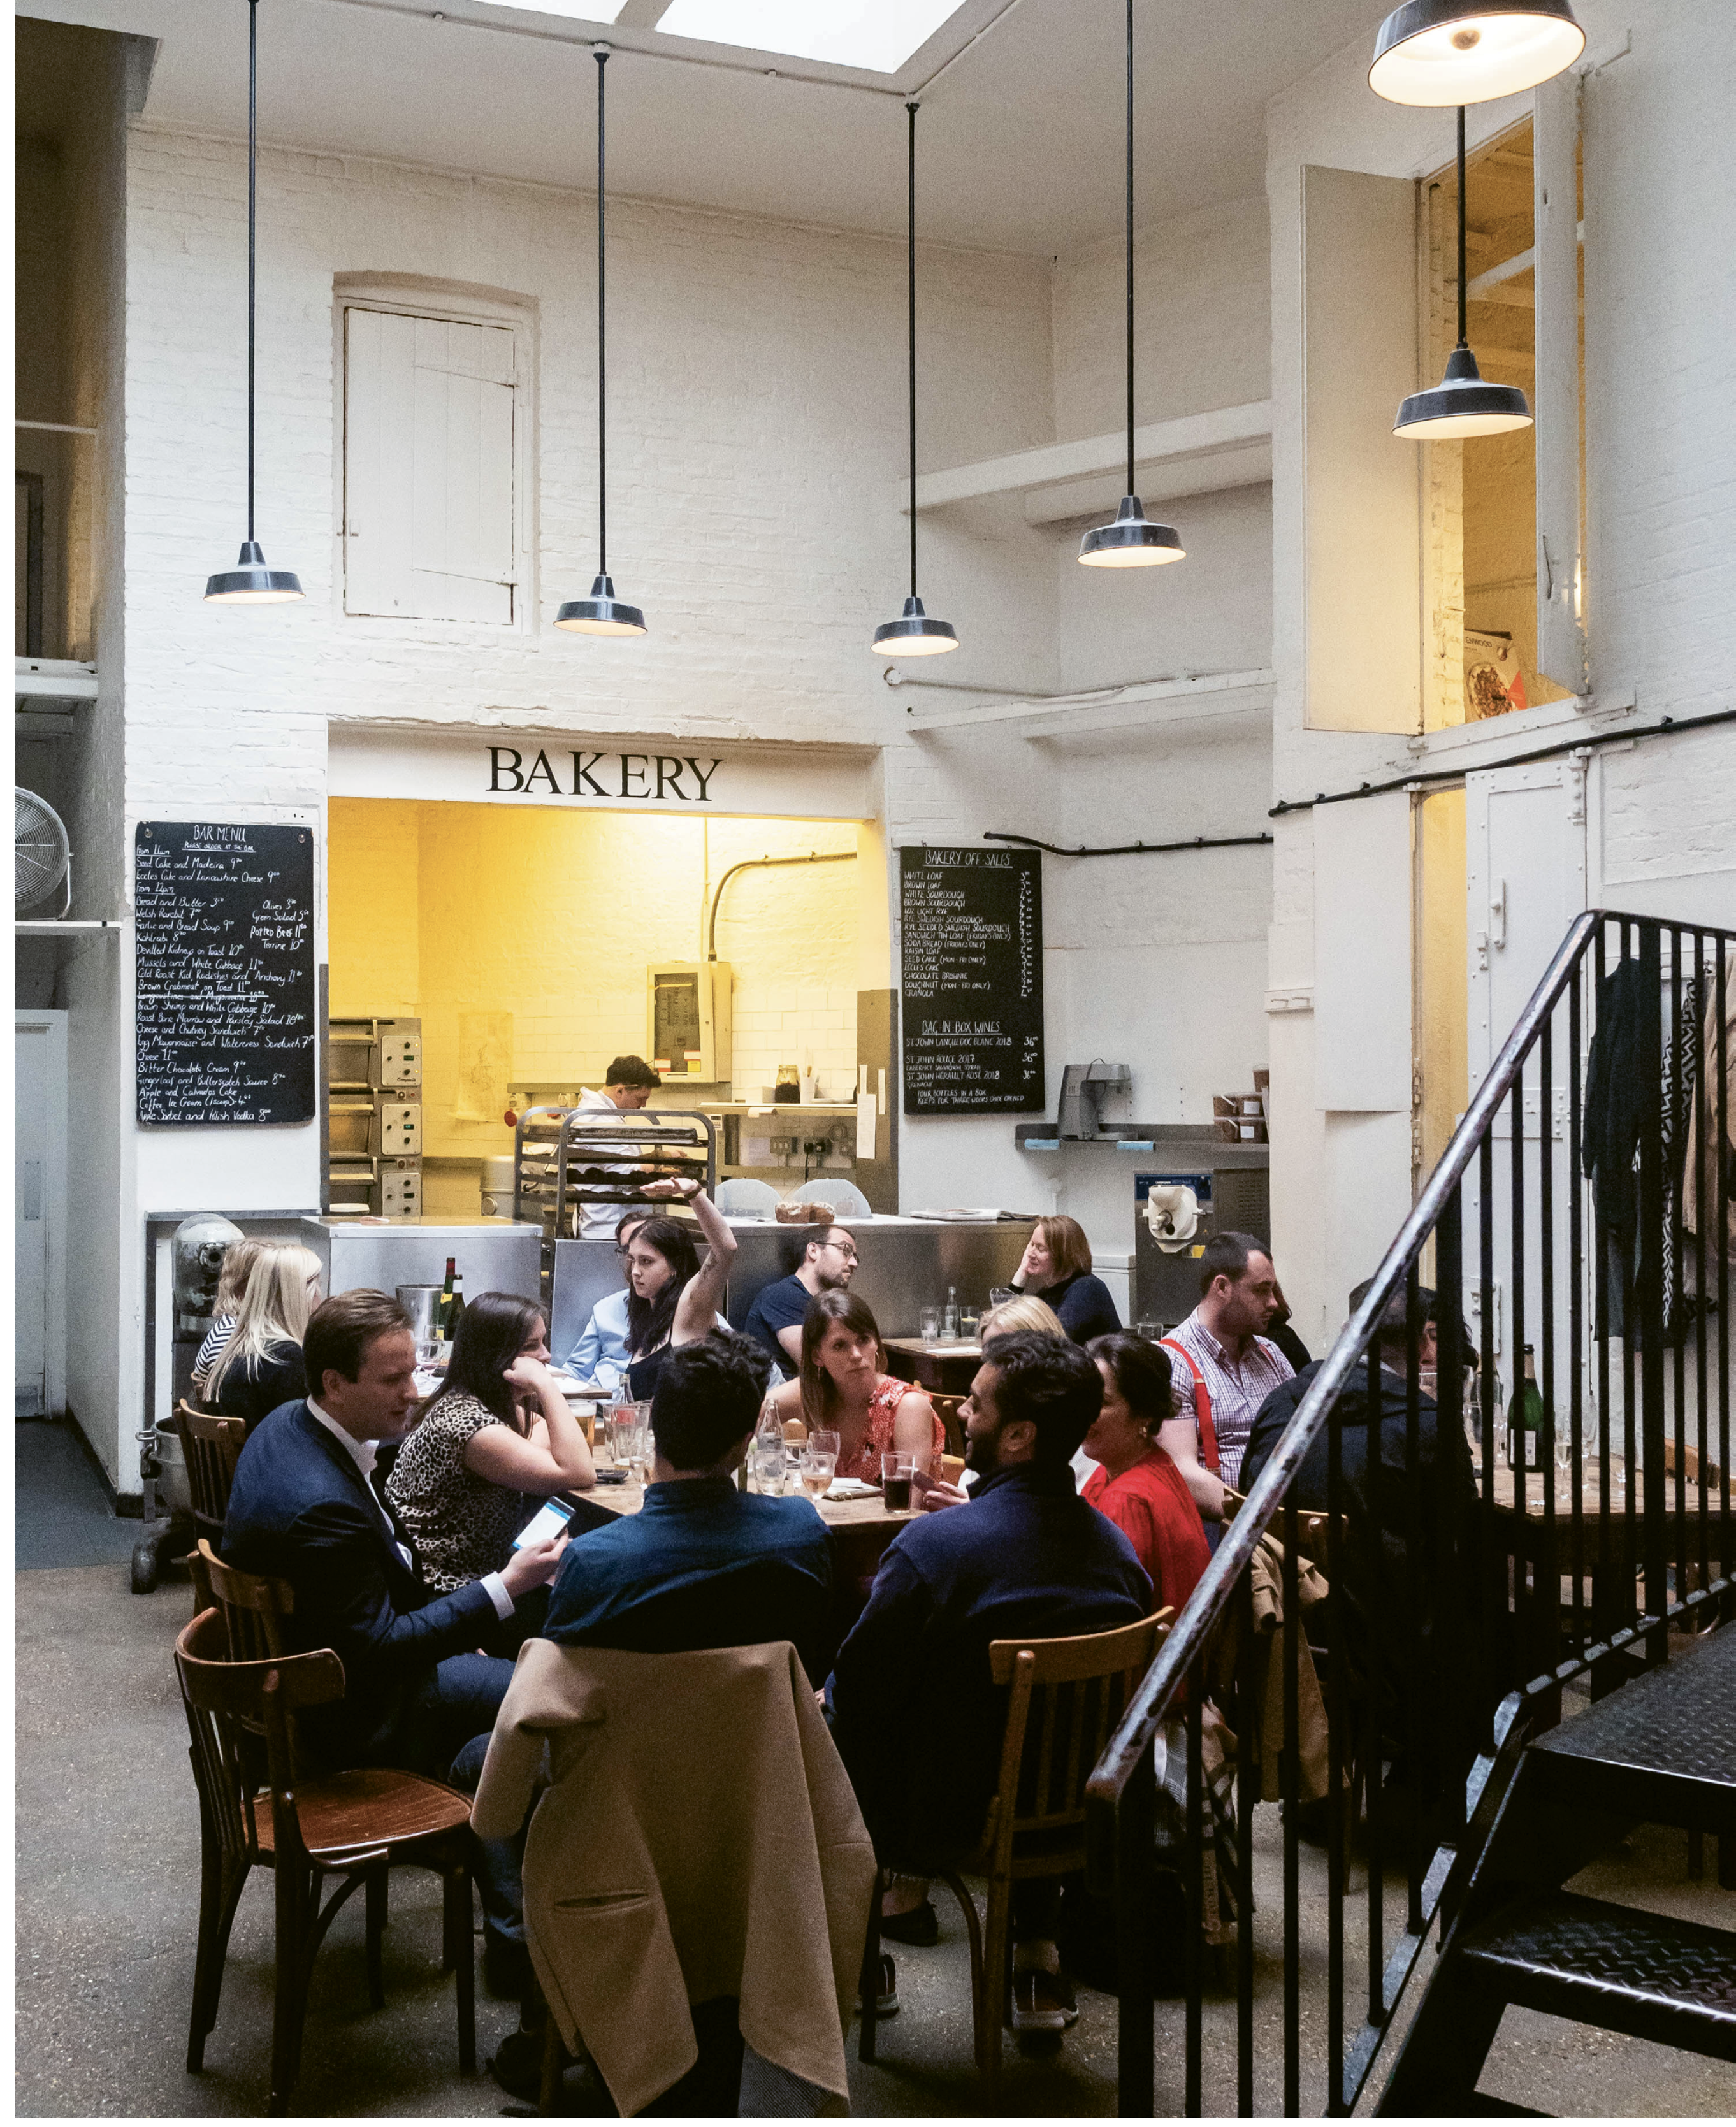 """There's no art on the walls nor music in the background at St. John—the focus here is """"proper British"""" food and drink, with plenty of wit and conversation, too."""